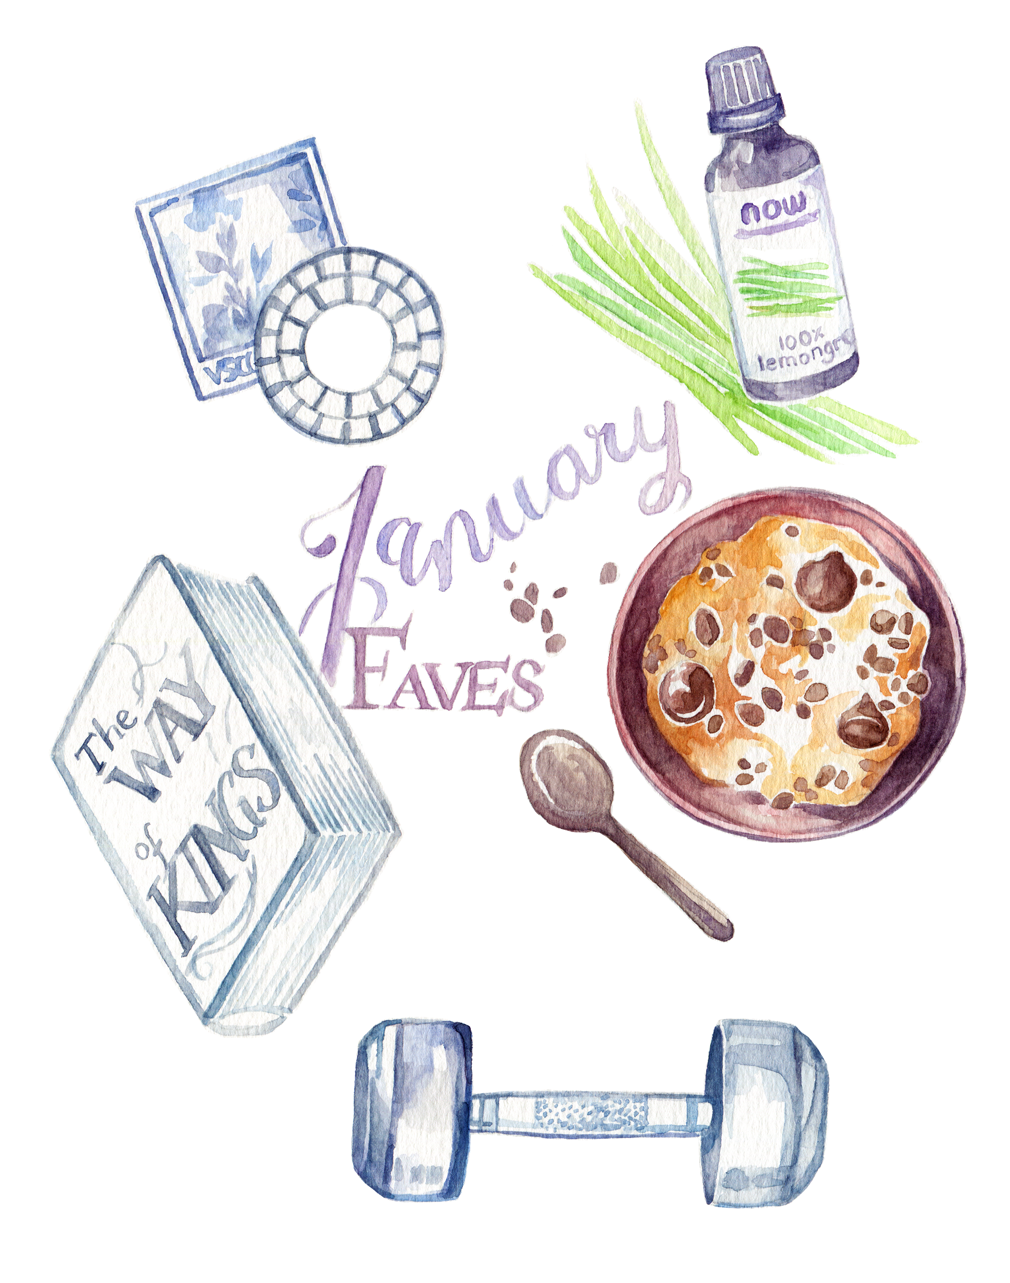 My January Favorites Illustration: Essential oil to make working from home more comfortable, a productivity tip for long work hours, book recommendations, and my newest food obsession: Vegan cookie dough! Getting in some extra protein since I started weight lifting - noob gains need fuel!